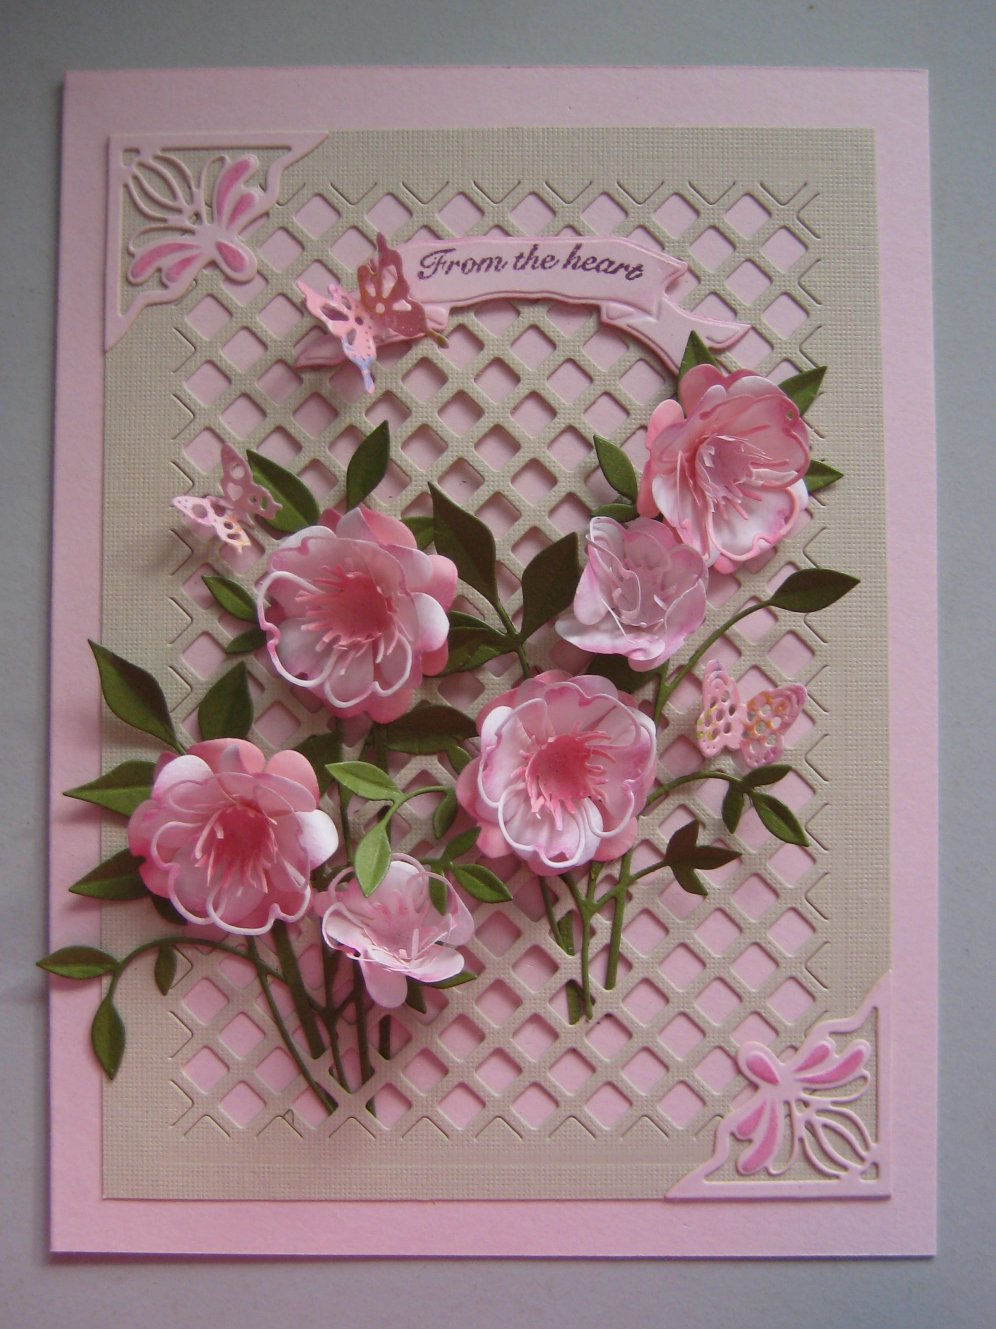 PENNY FLOWERS: Two more cards